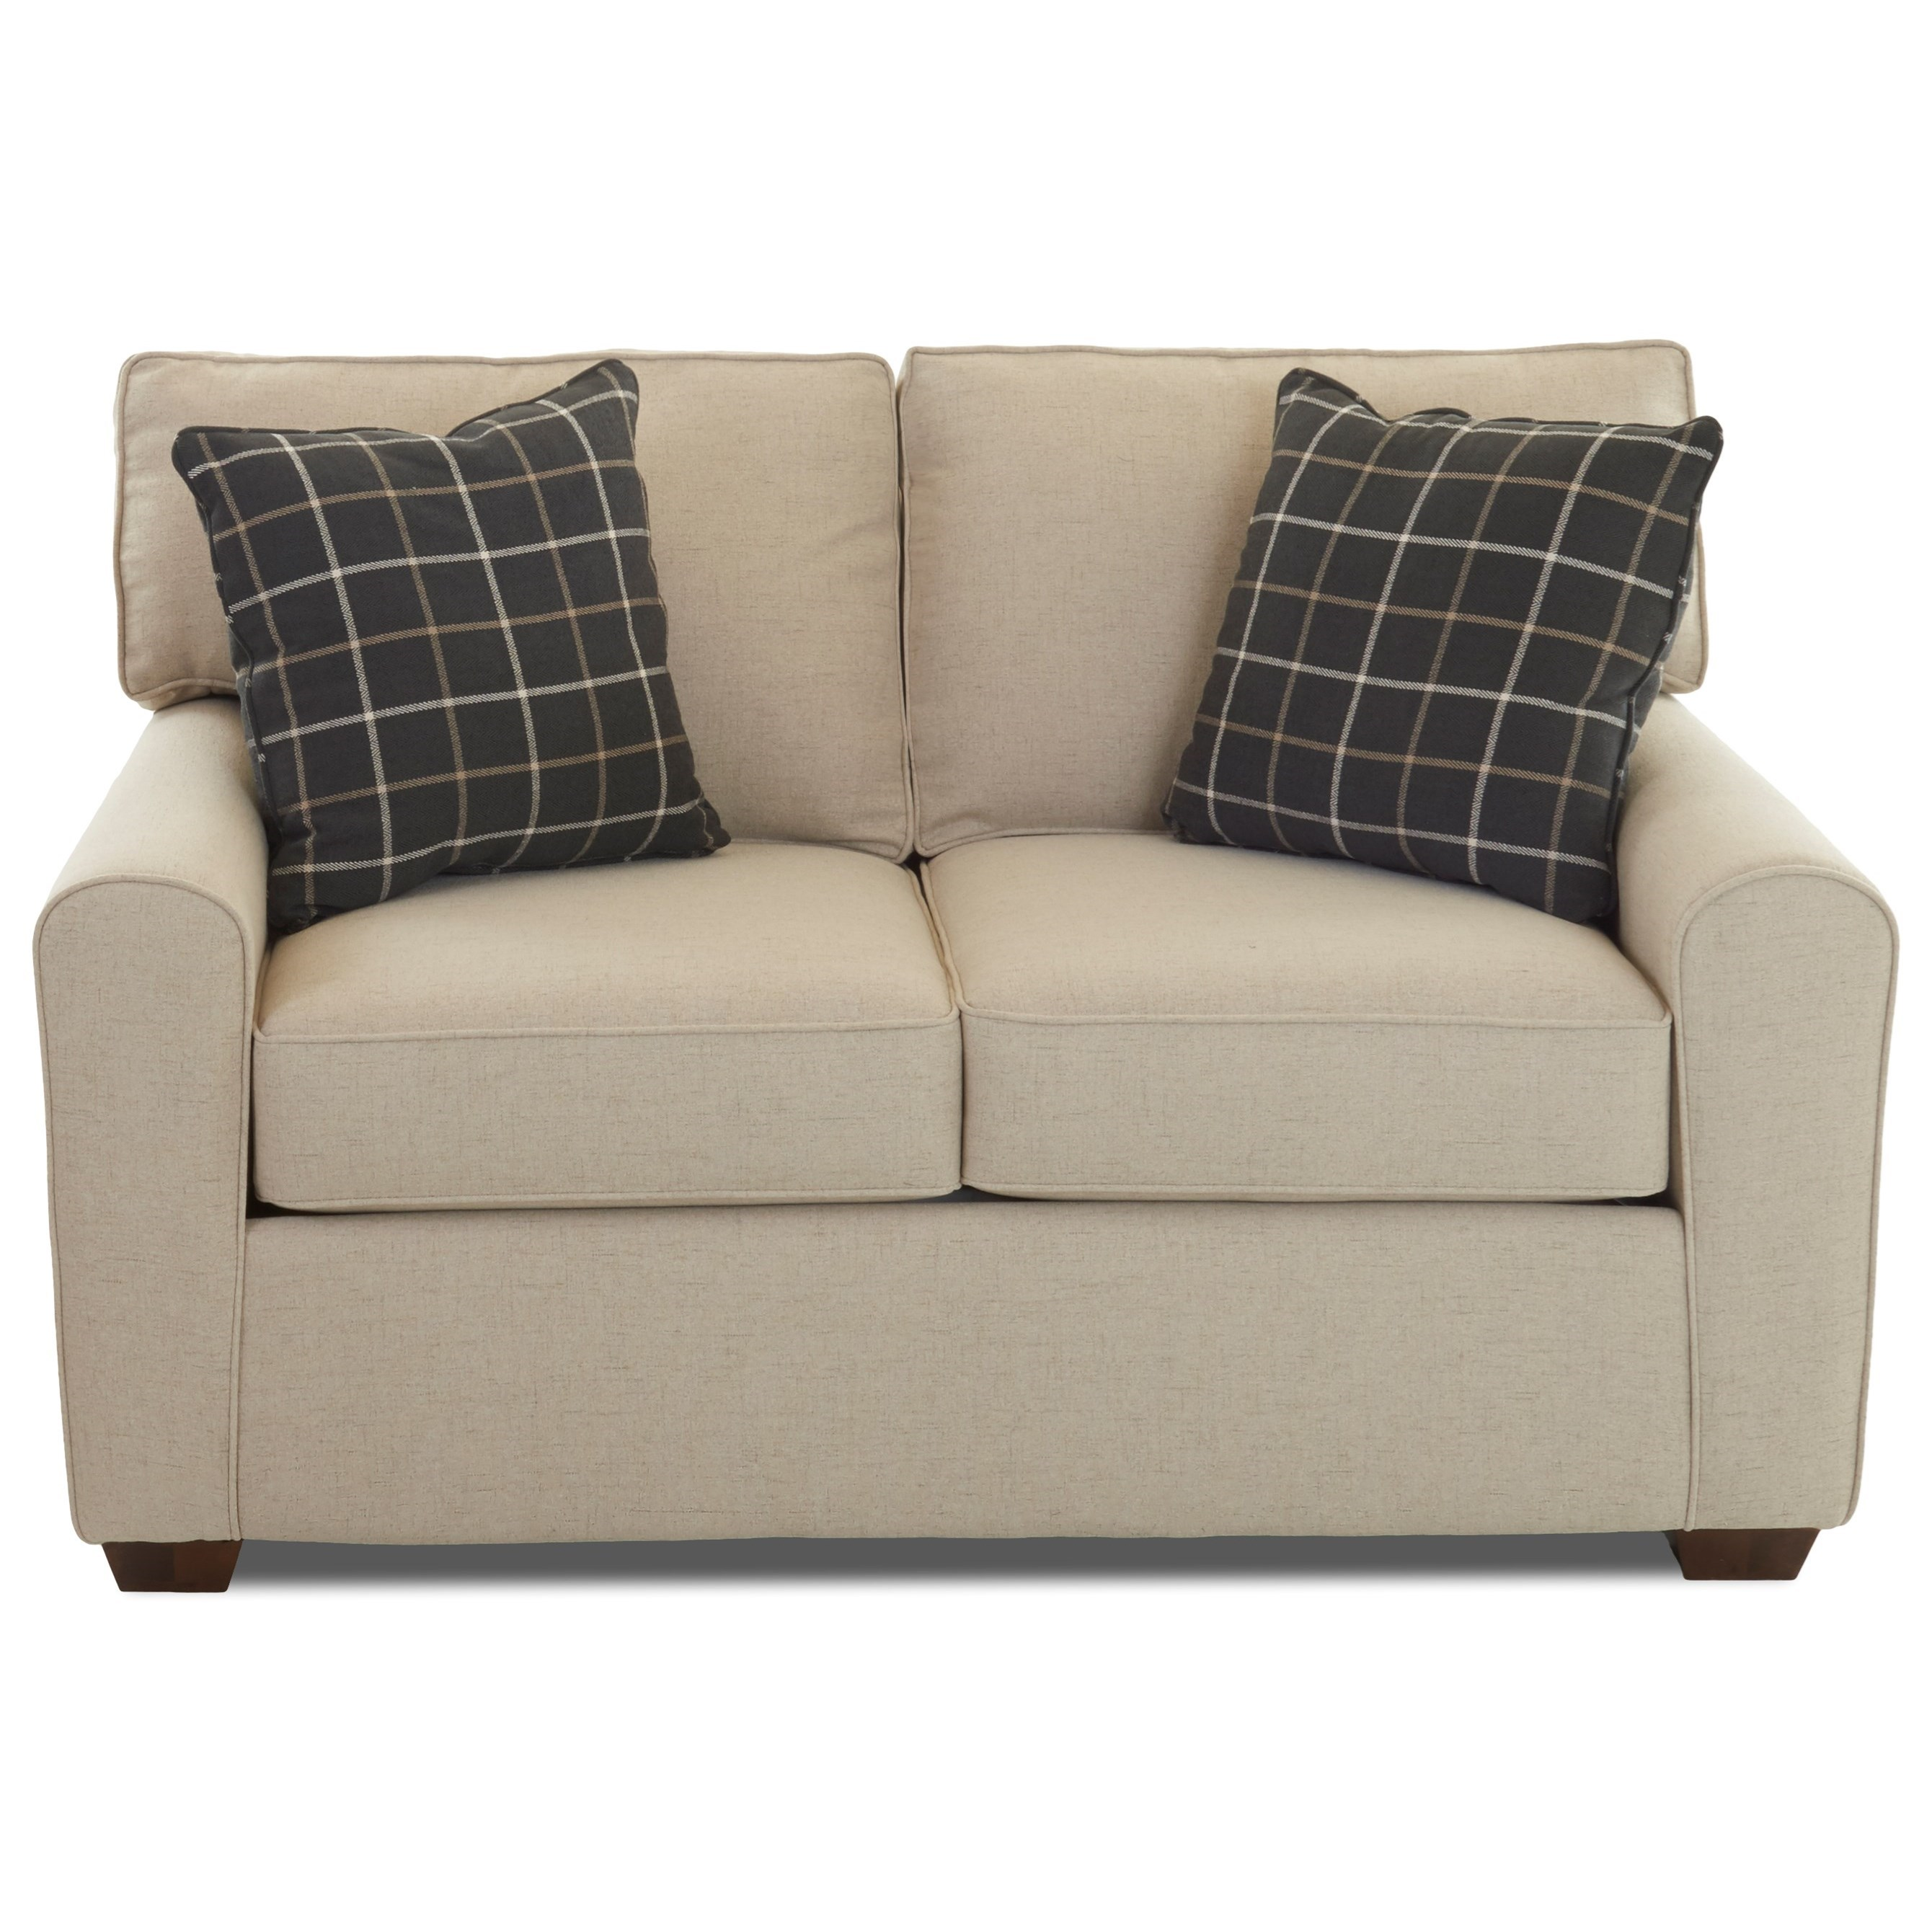 Loveseat w/ Box Cushions